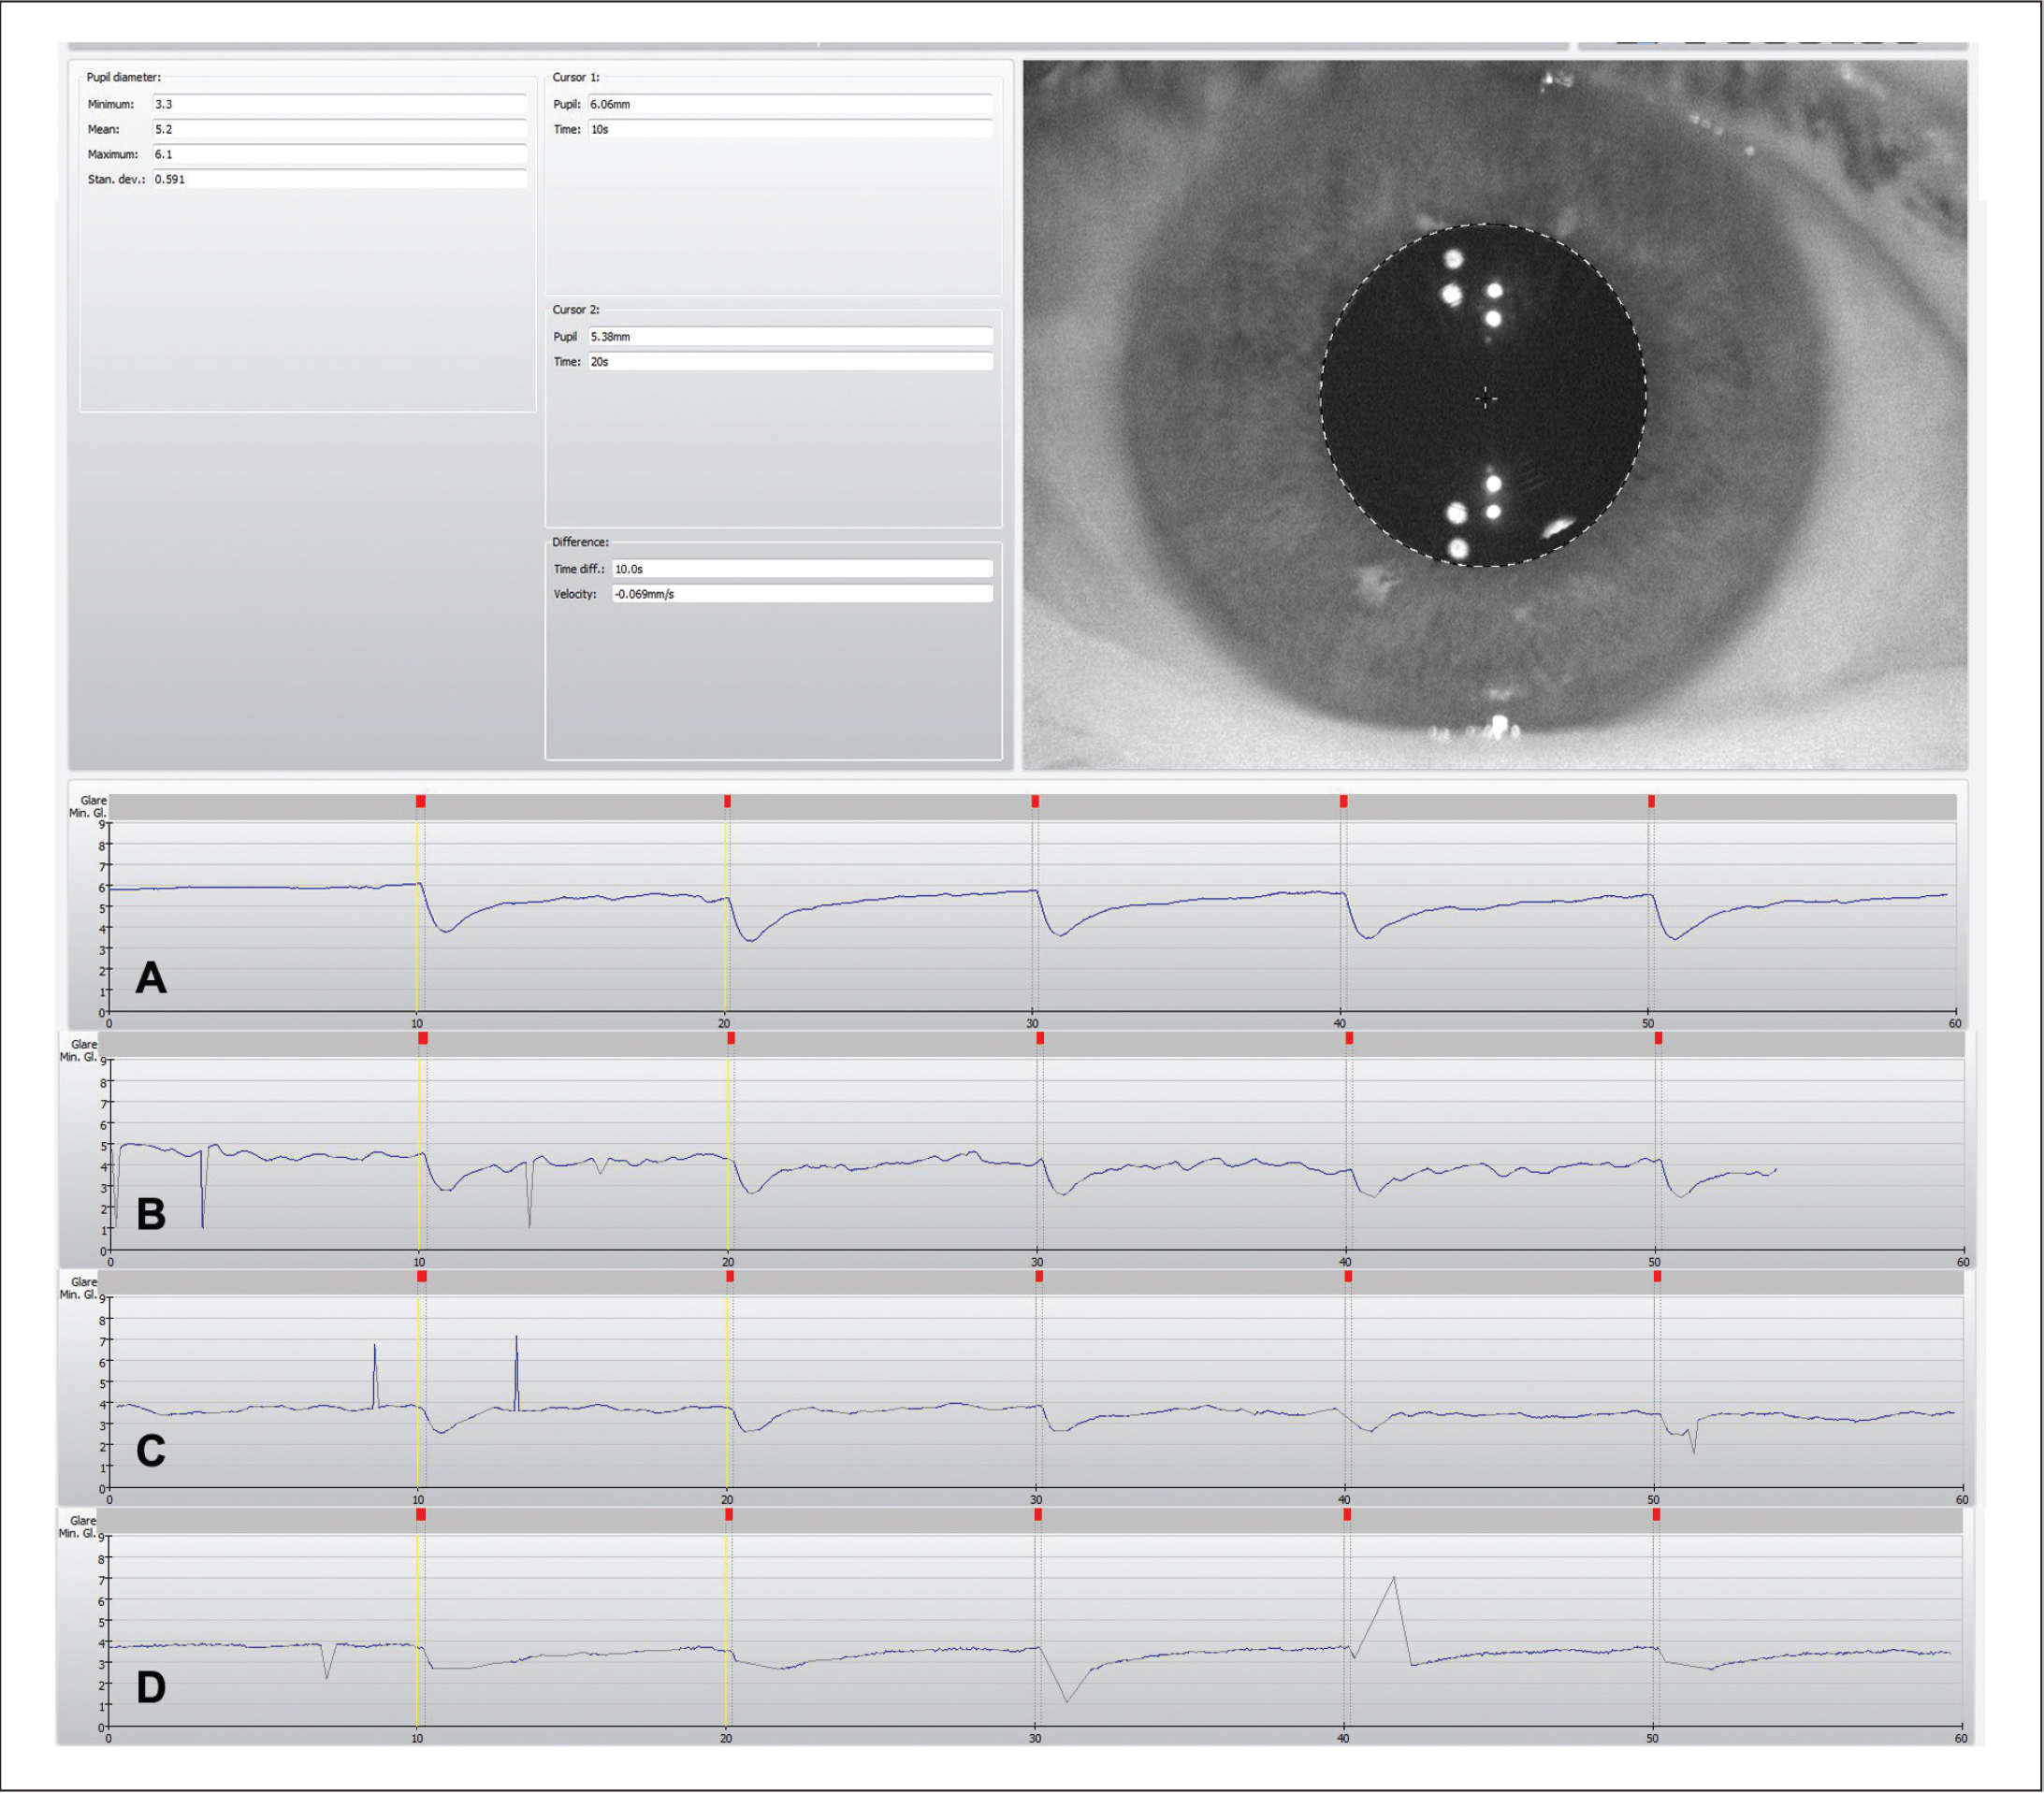 Screen capture of the Keratography 5M software (Oculus Optikgeräte) showing (A) a perfect measurement and measurements with artefacts with the potential of leading to wrong estimations of (B) photopic, (C) mesopic, or (D) both pupil measurements. The horizontal axis represents the time during the trial consisting of periodic consecutive periods of pause, 10 seconds at environmental mesopic light of 5 lux (marked with a vertical yellow line), followed of 0.2 seconds of glare of 568 lux (red mark). The blue line represents the pupil diameter oscillations, with minimum representing the photopic pupil diameter and maximum mesopic pupil diameter.